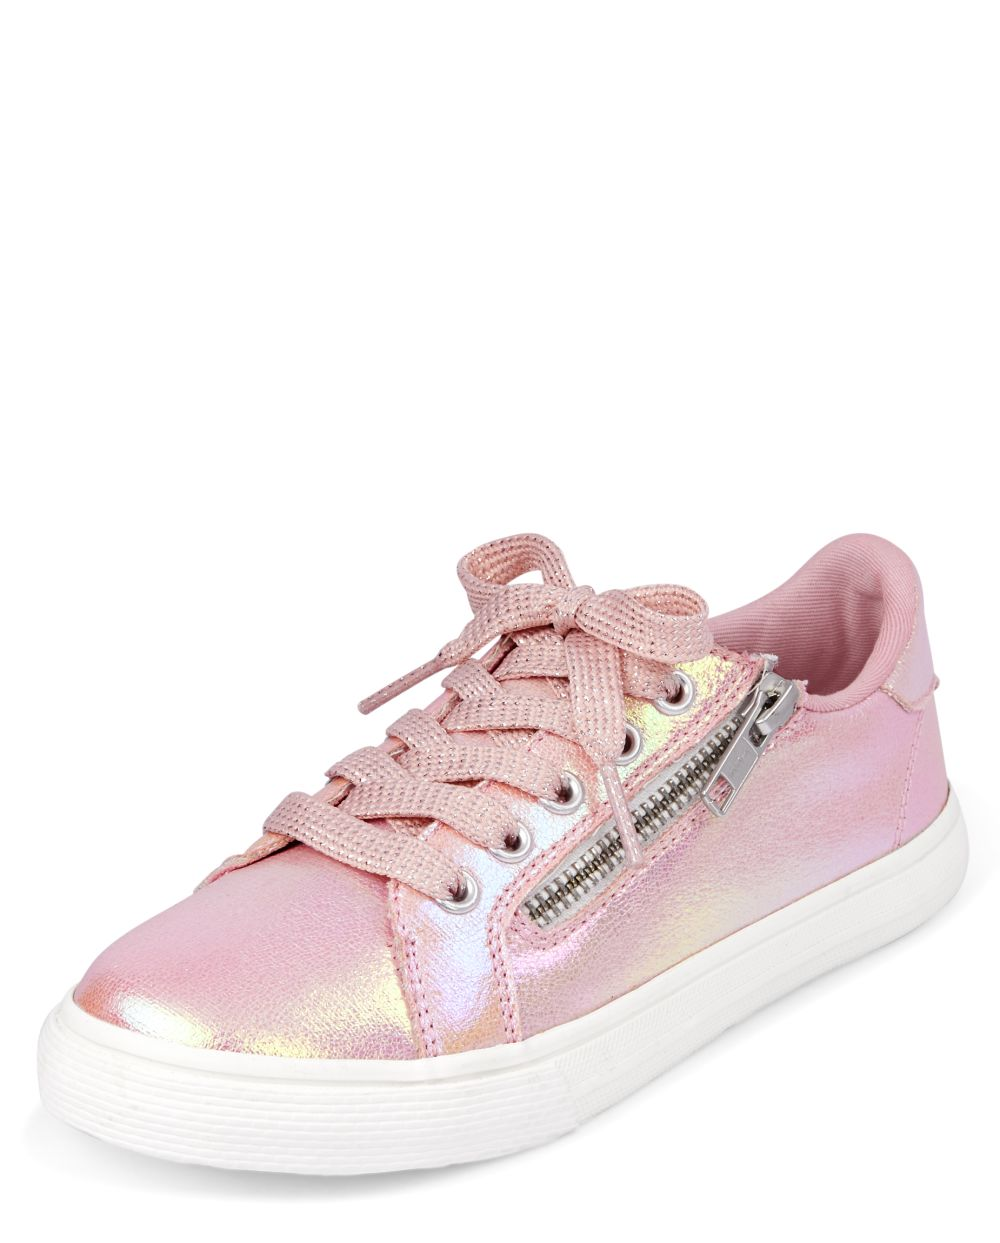 Shimmer Zip Low Top Sneakers - Pink